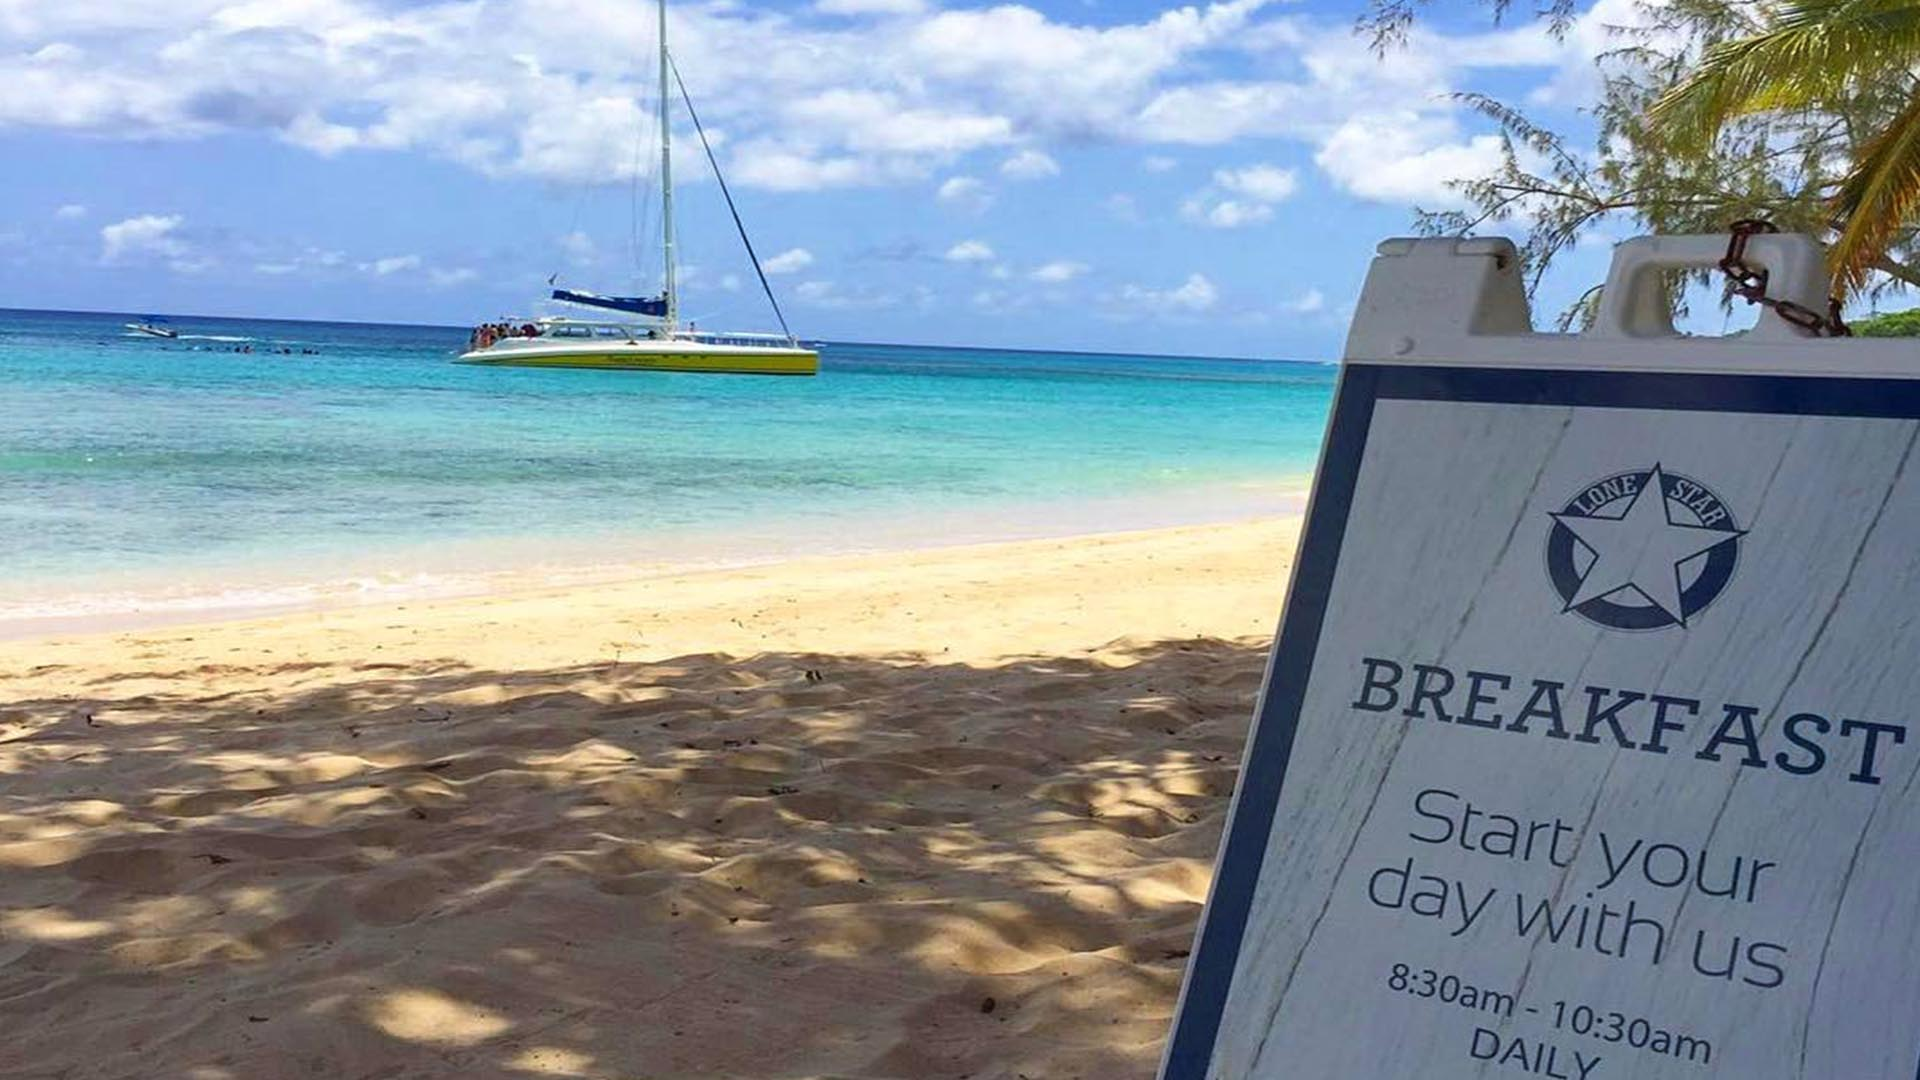 The best restaurants in Barbados the Lone Star Hotel Breakfast